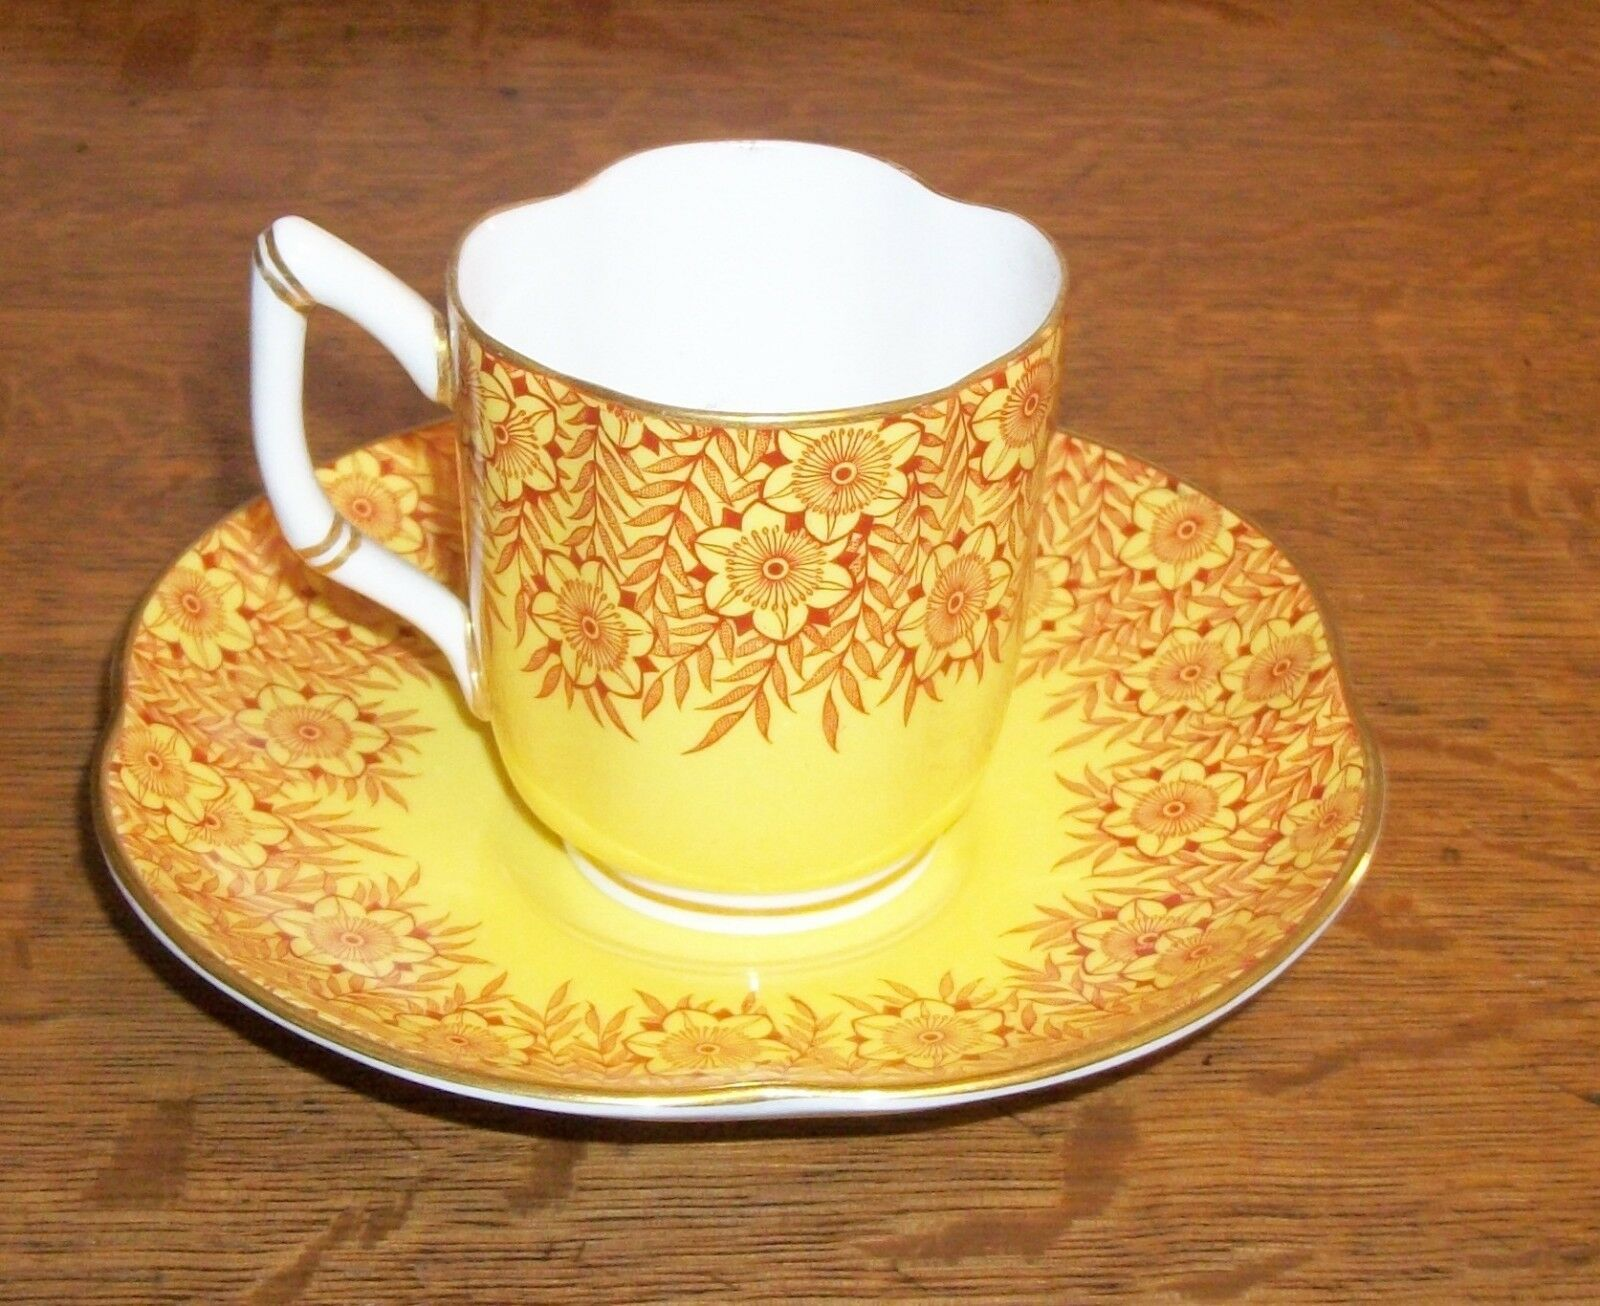 1911 ROYAL WORCESTER BONE CHINA OLD TEA CUP CHINTZ YELLOW BIGELOW KENNARD BOSTON